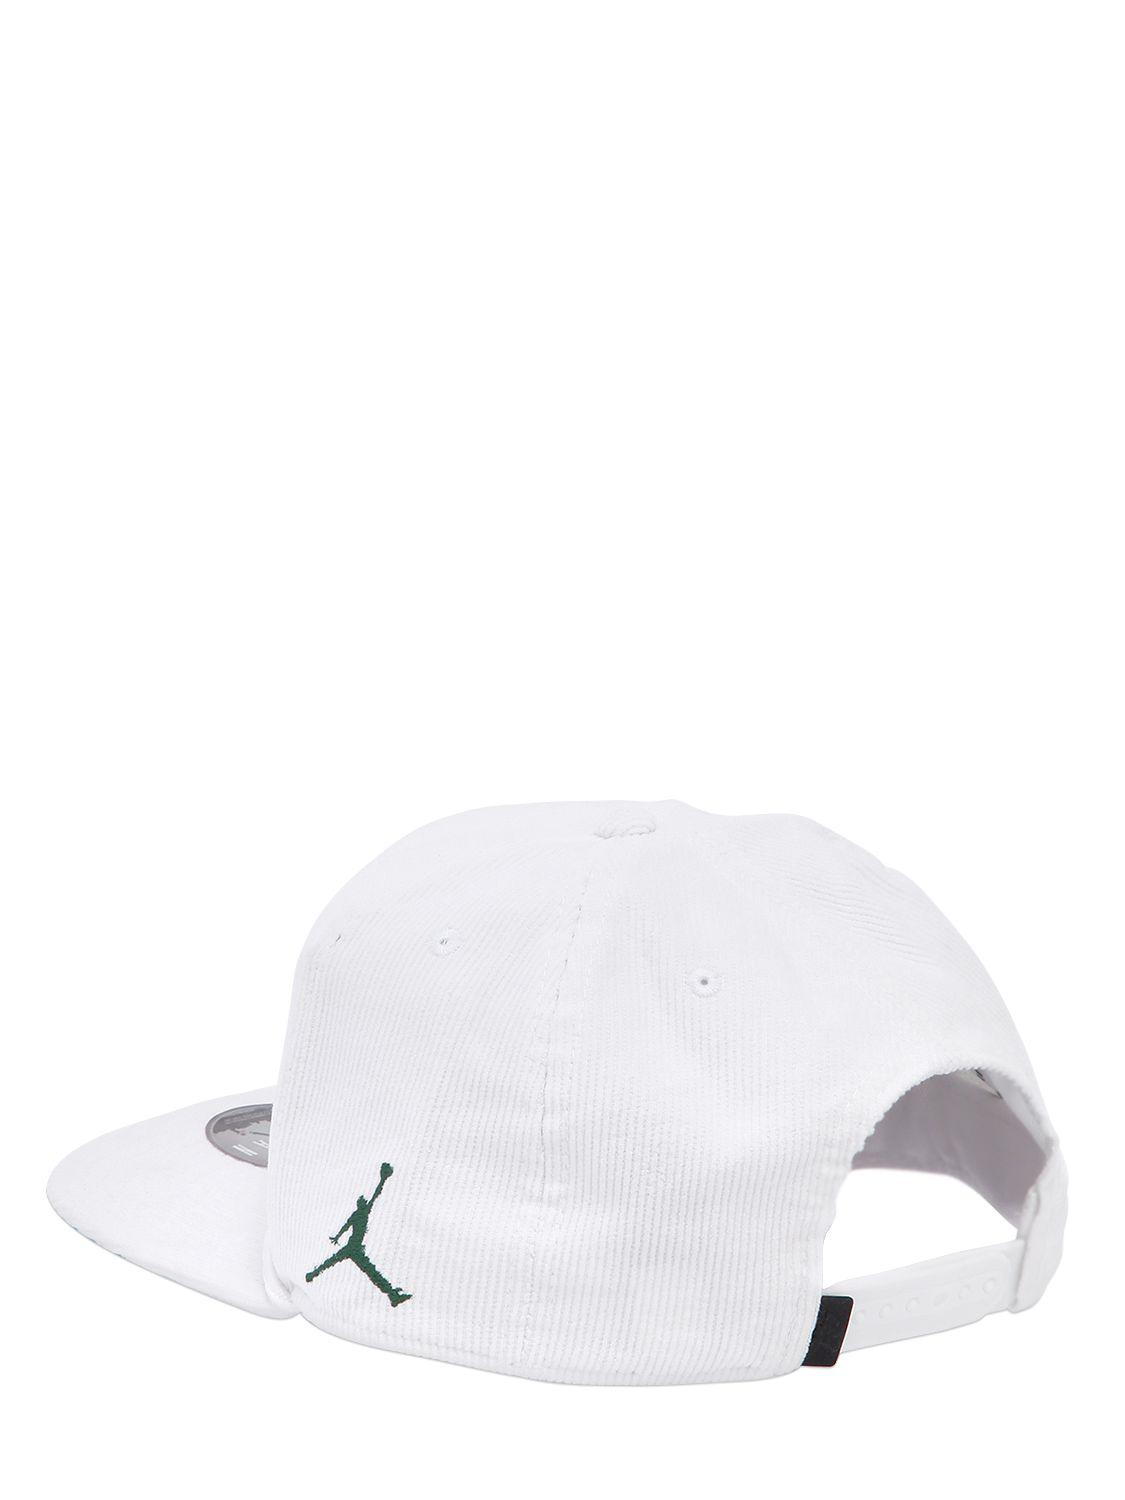 Lyst - Nike Jordan X Gatorade Pro Like Mike Hat in White for Men 39ab5165579